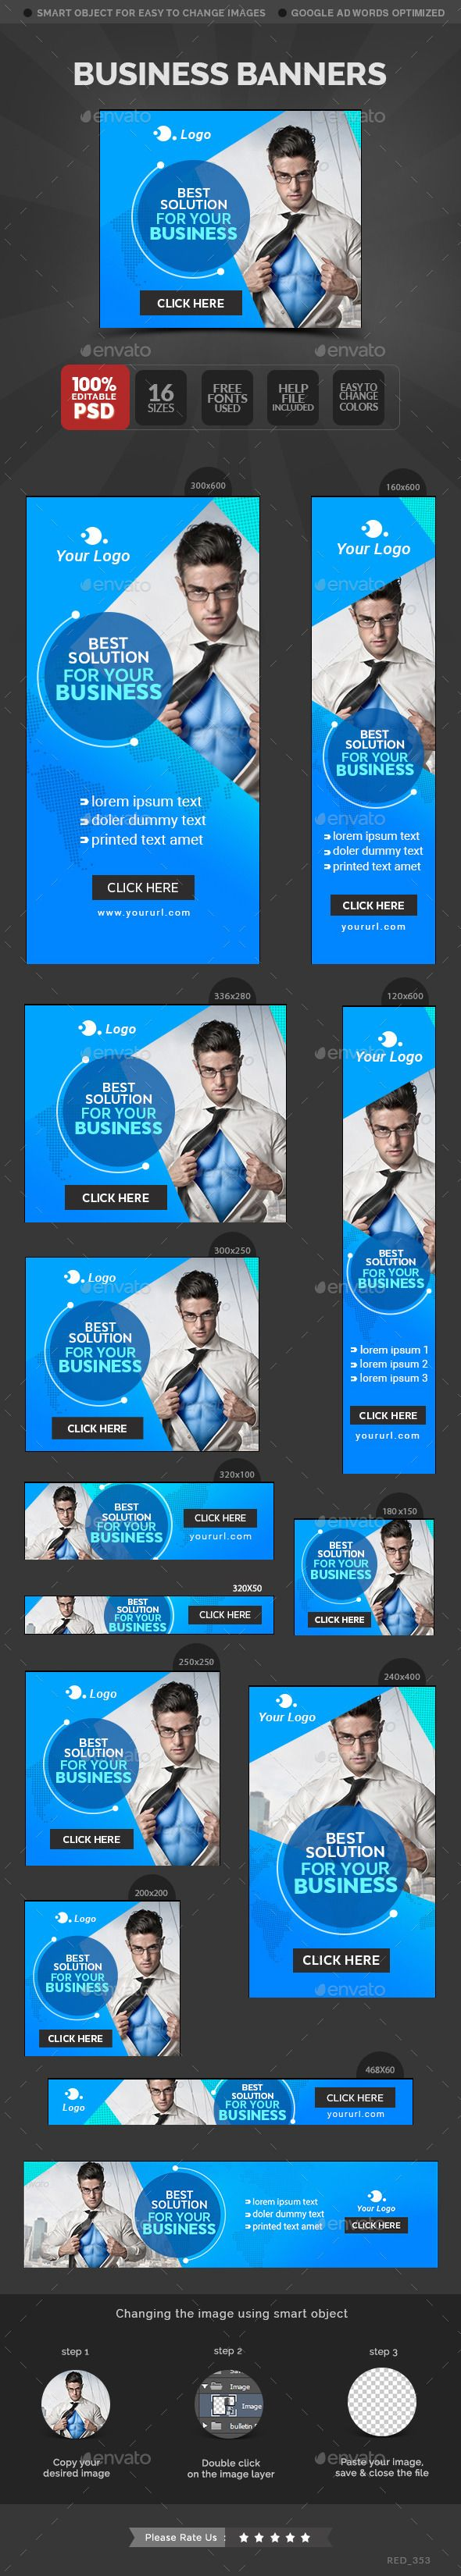 Business Web Banners Template #webbanners #design Download: http://graphicriver.net/item/business-banners/12046455?ref=ksioks